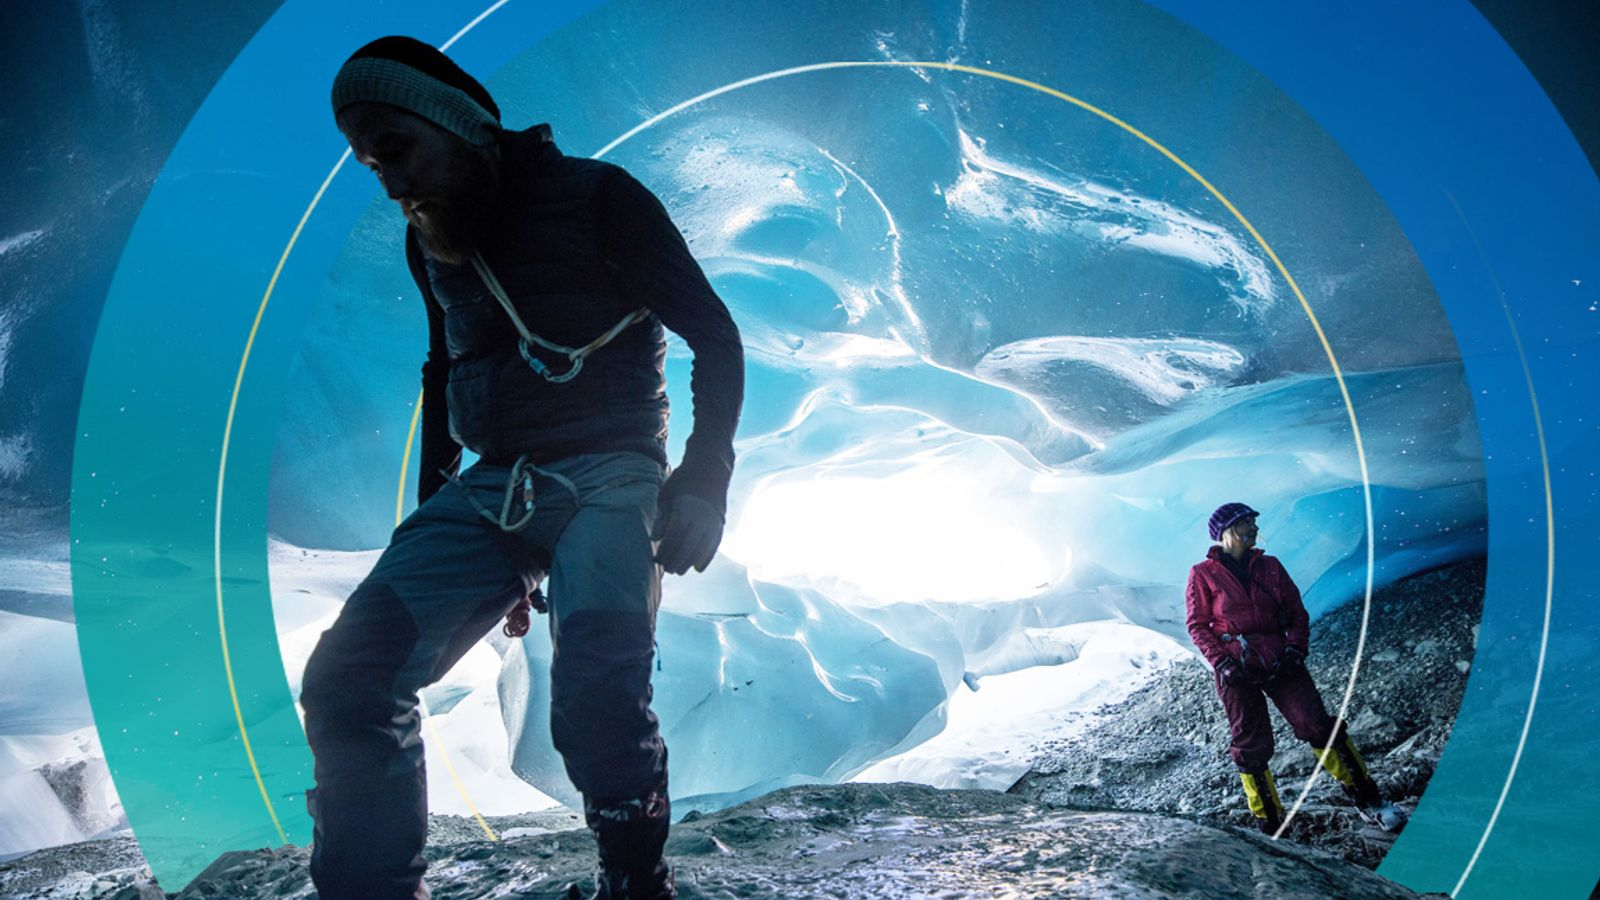 Stunning pictures show inside otherworldly ice caves appearing in the Austrian Alps